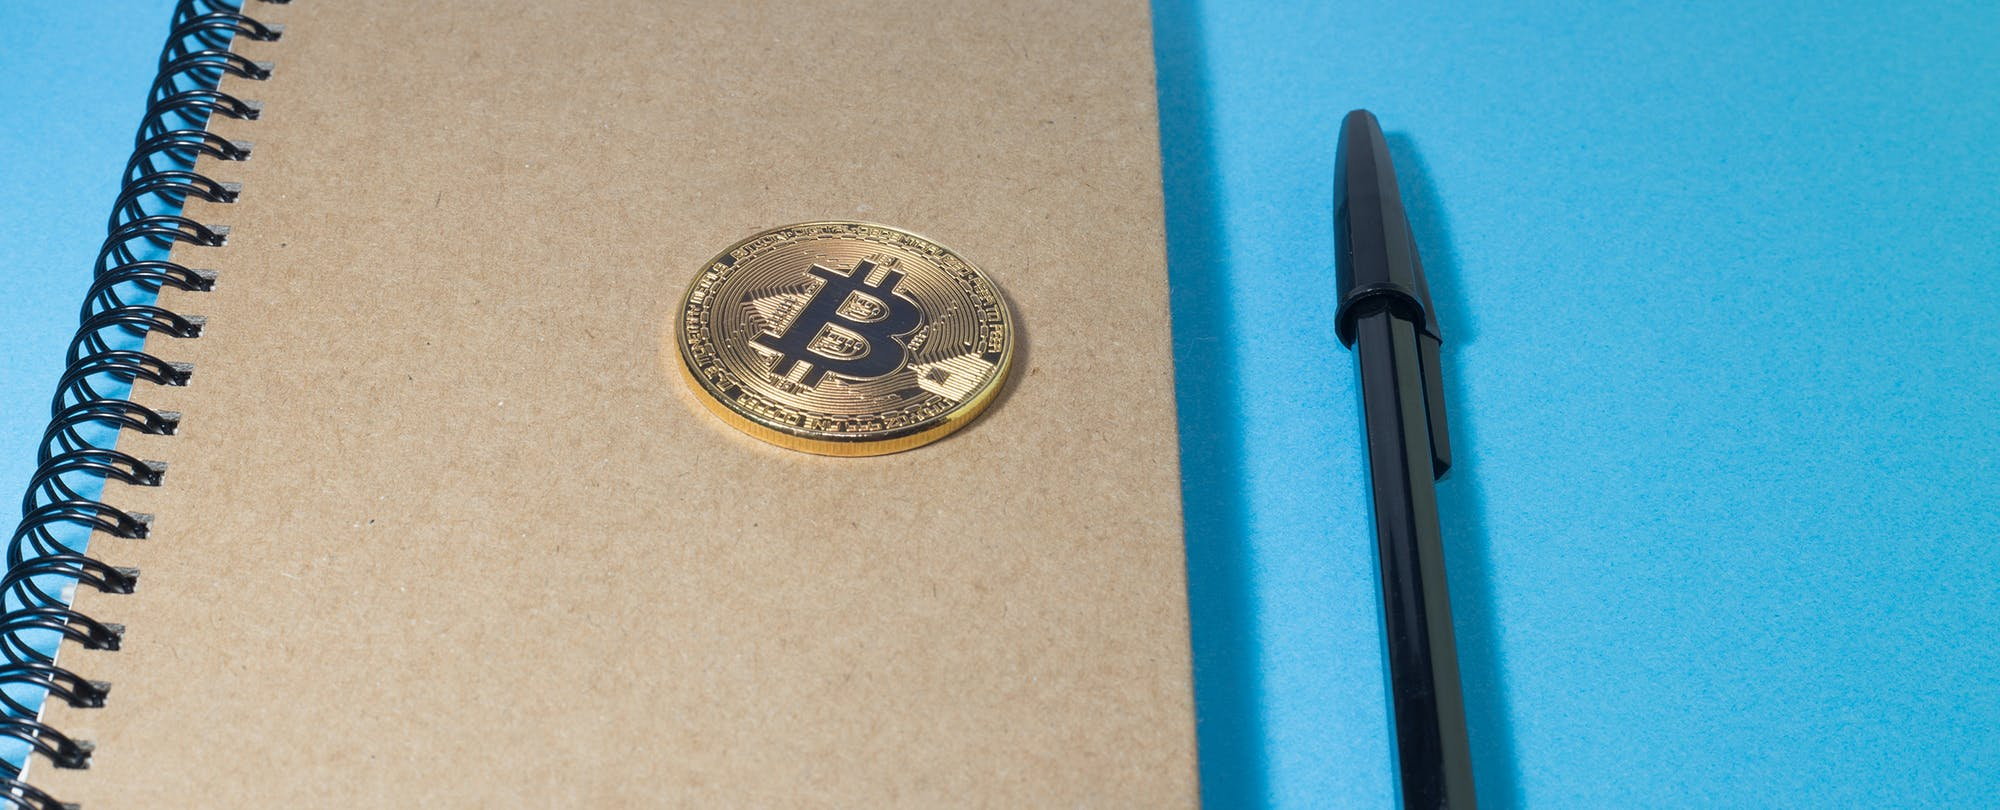 ​Blockchain, Bitcoin and the Tokenization of Learning